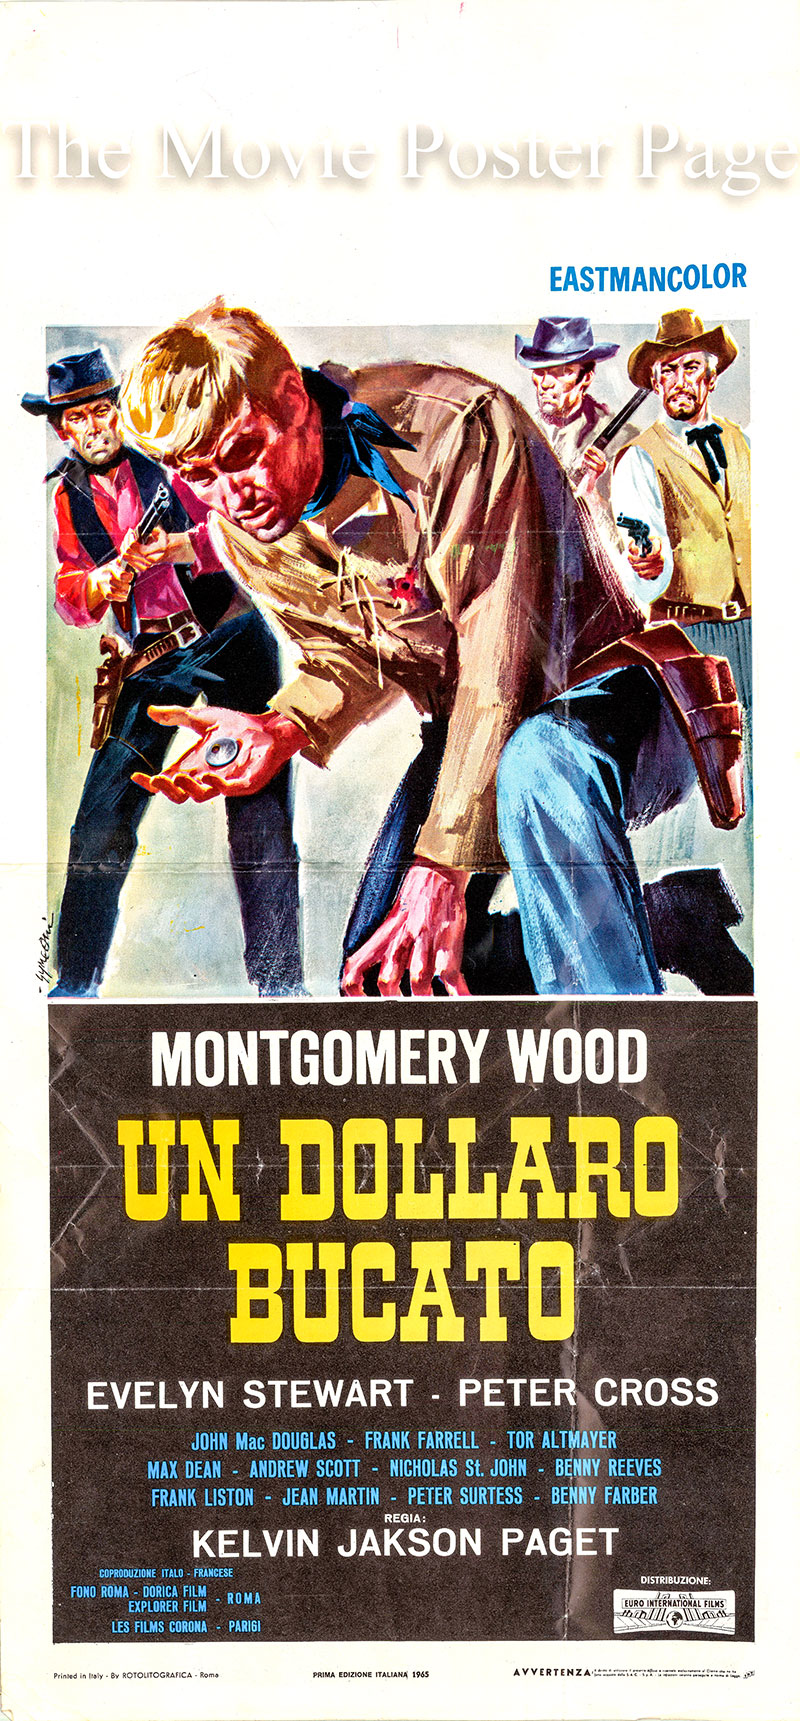 Pictured is an Italian locandina poster for the 1965 Giorgio Ferroni film Blood for a Silver Dollar starring Giuliano Gemma as Gary O\'Hara.